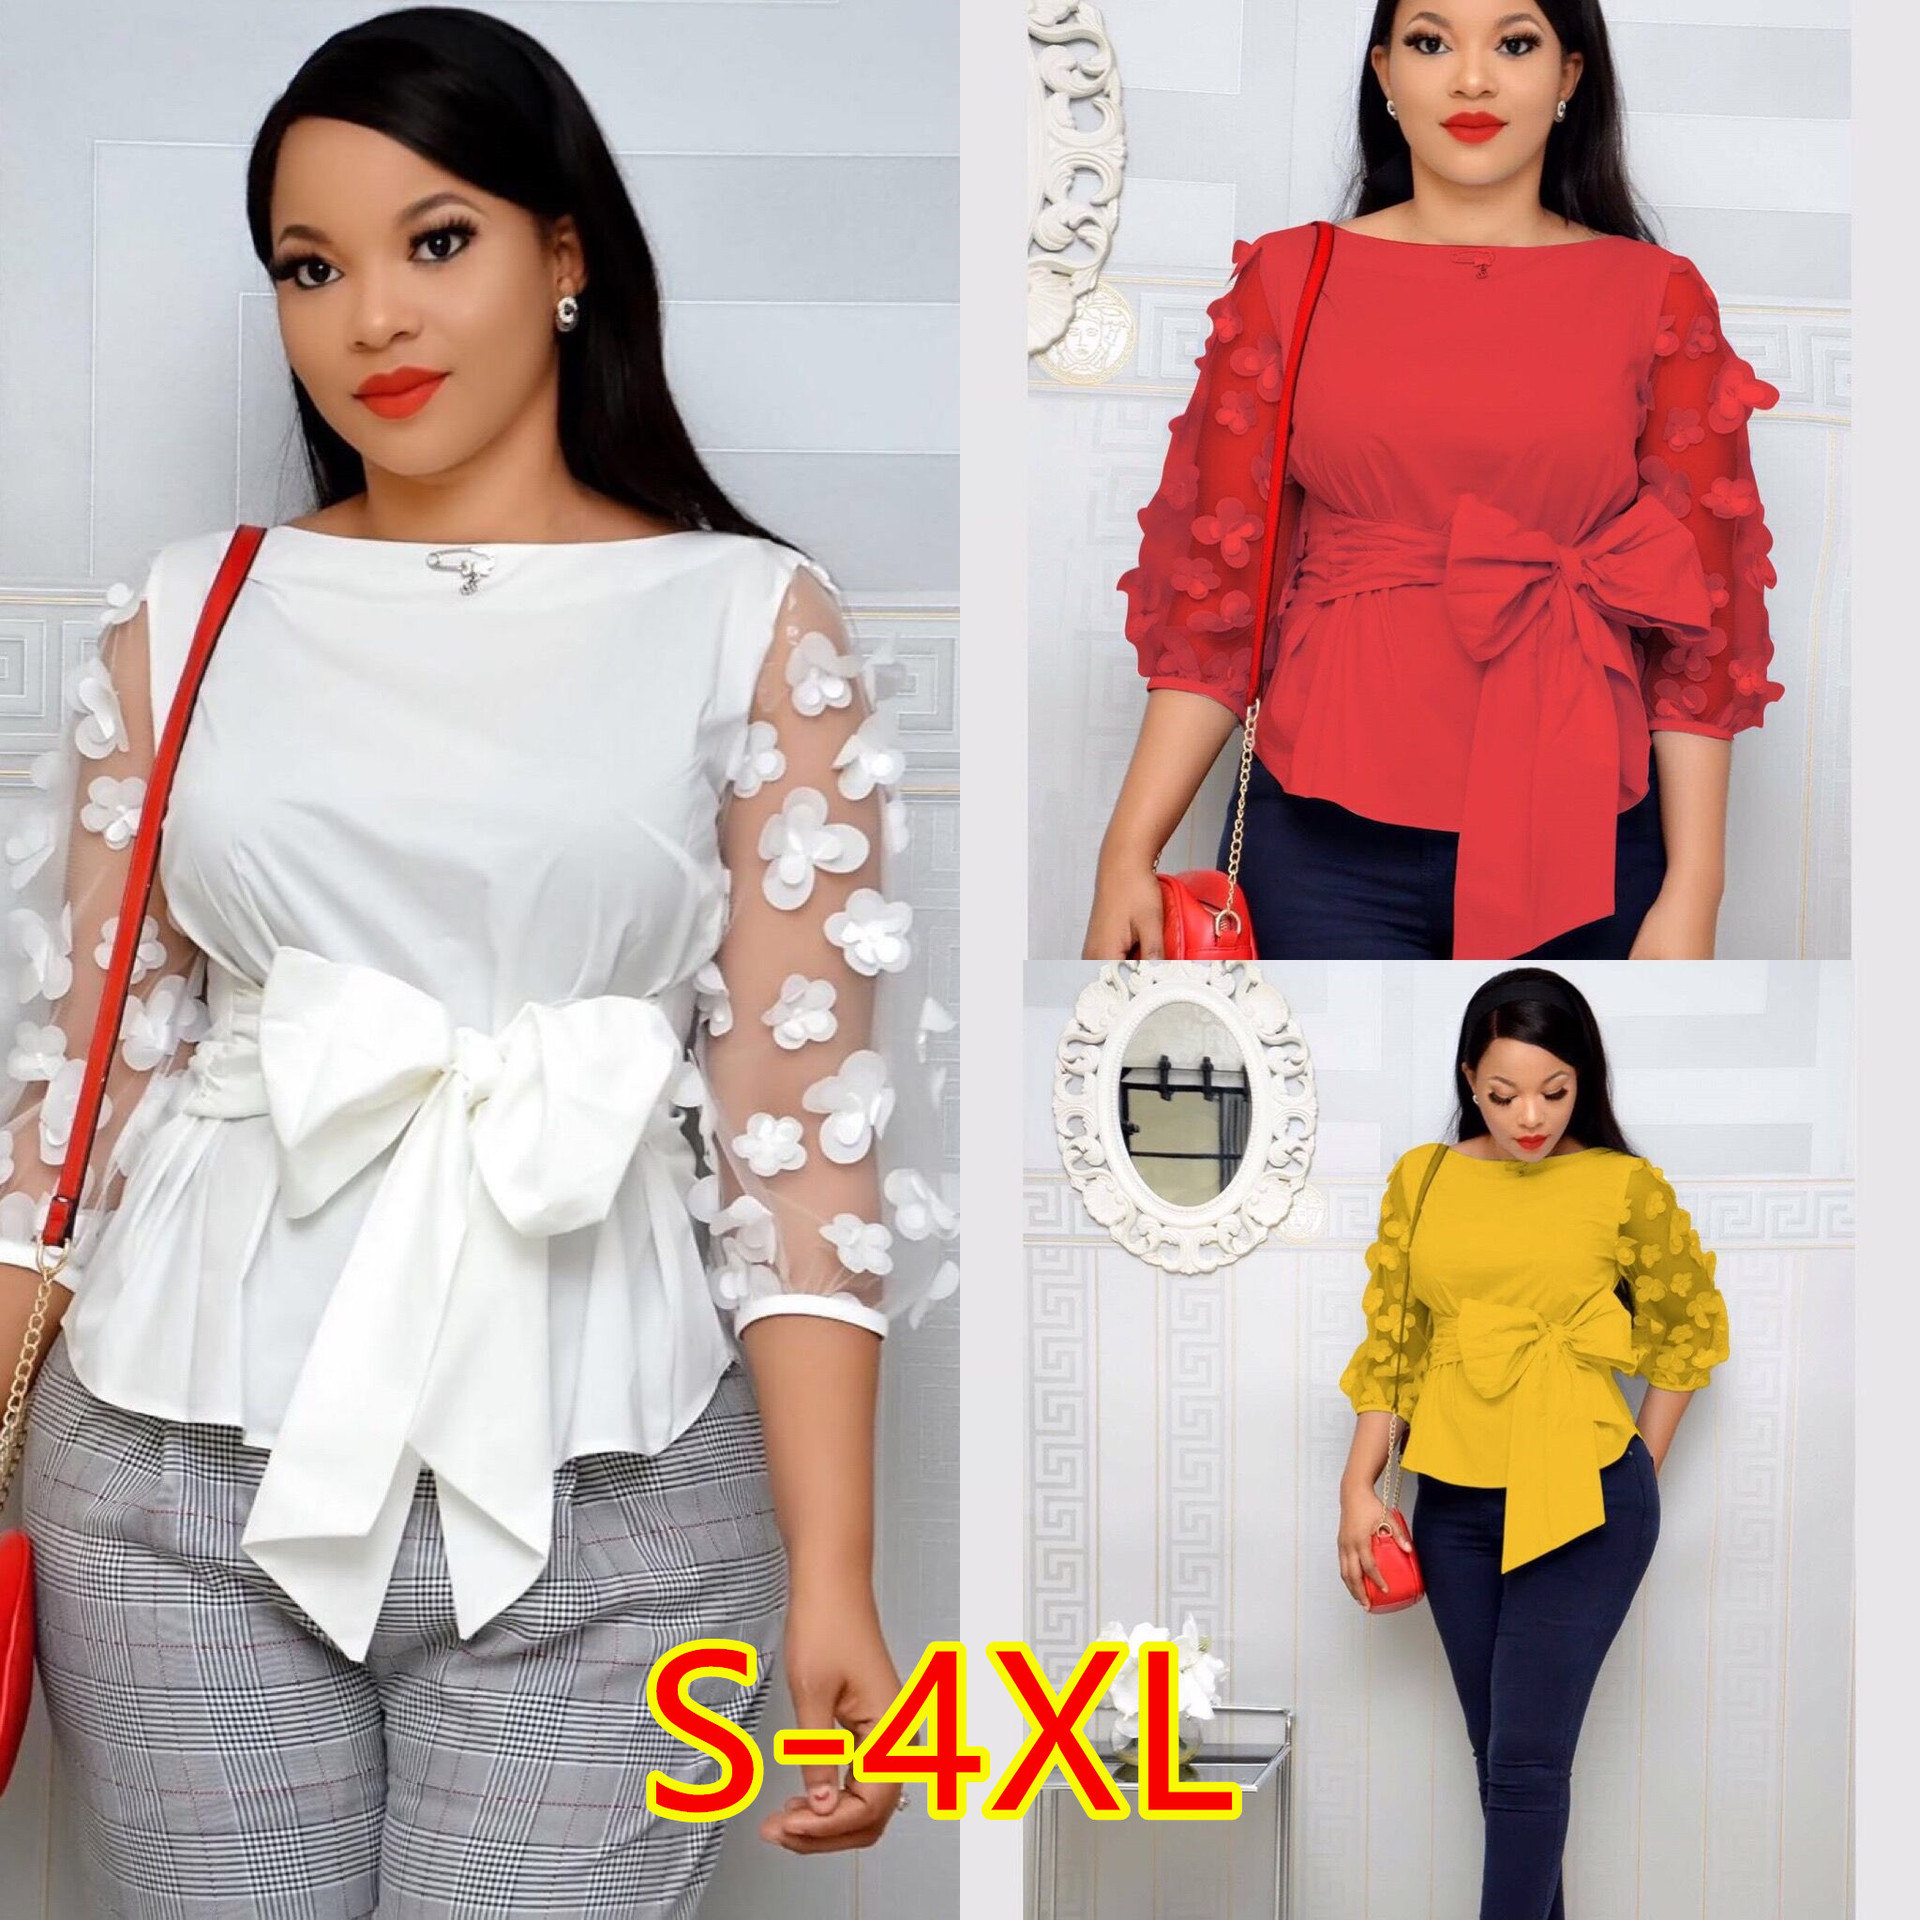 2019 Summer Sexy Fashion Style African Women O-neck Plus Size Shirts S-4XL